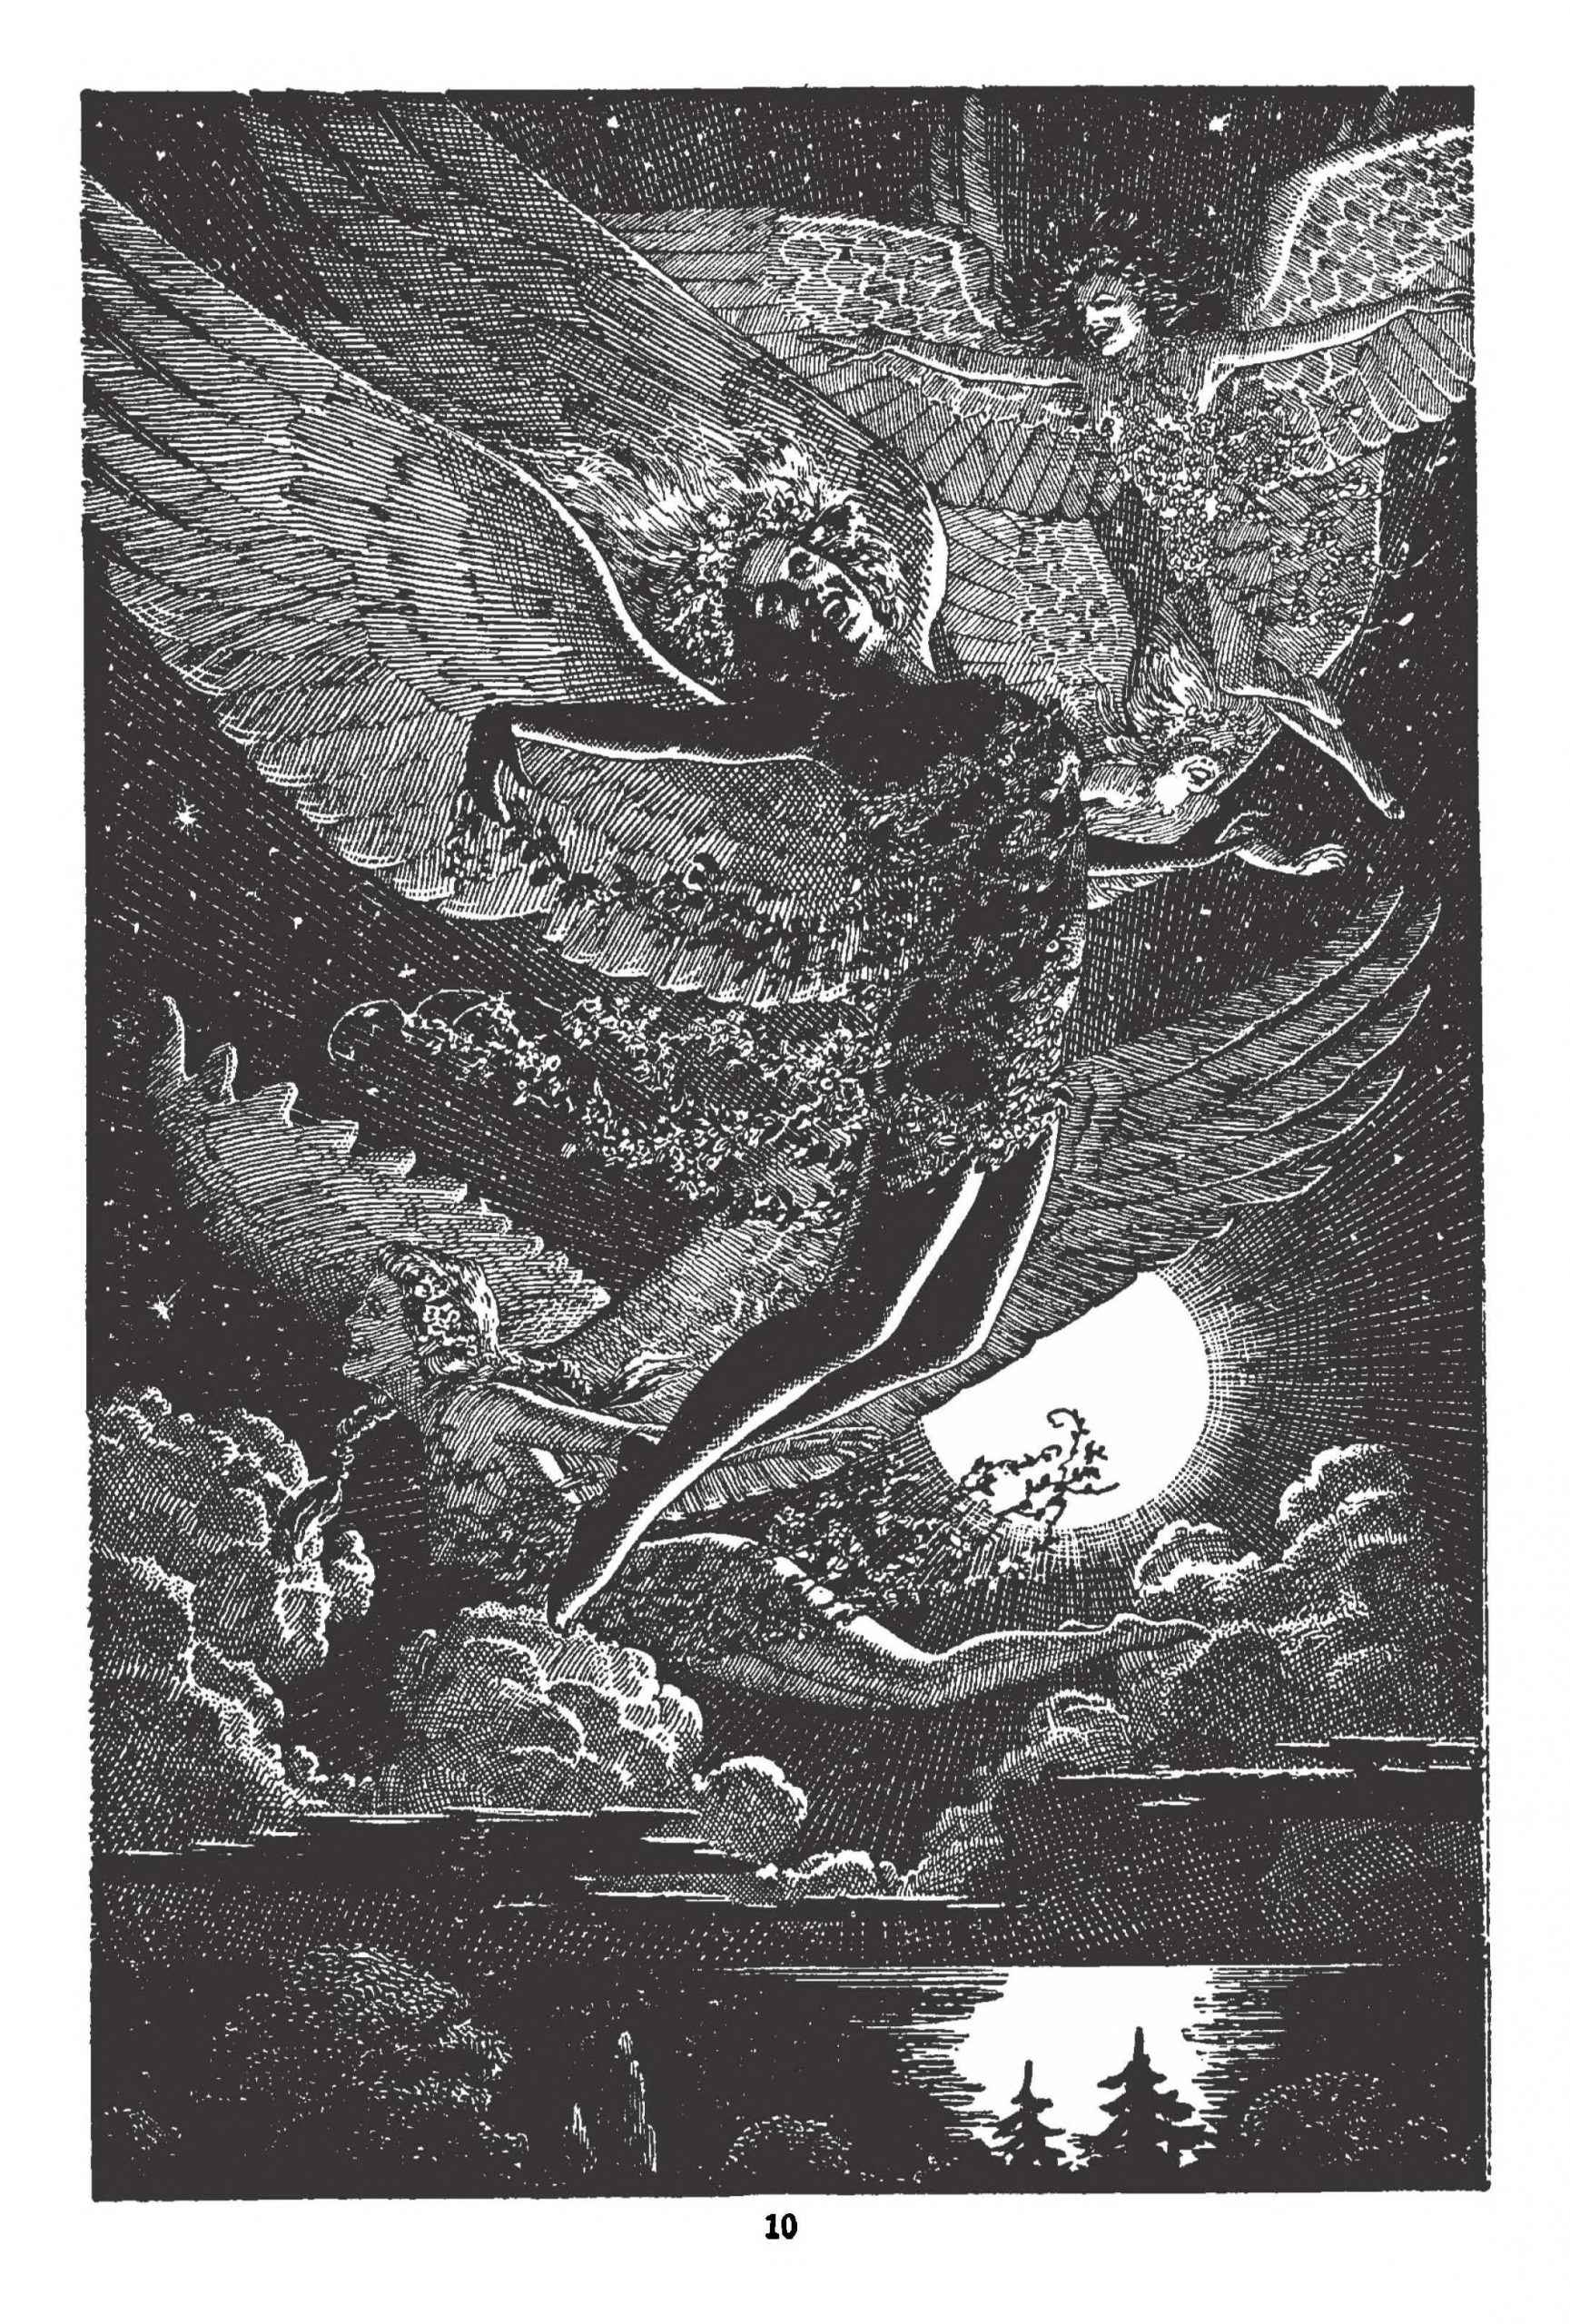 """Angels frolic in the moonlight in an illustration created by Lawrence Stern Stevens for Inez Haynes Gilmore's story """"Angel Island."""""""